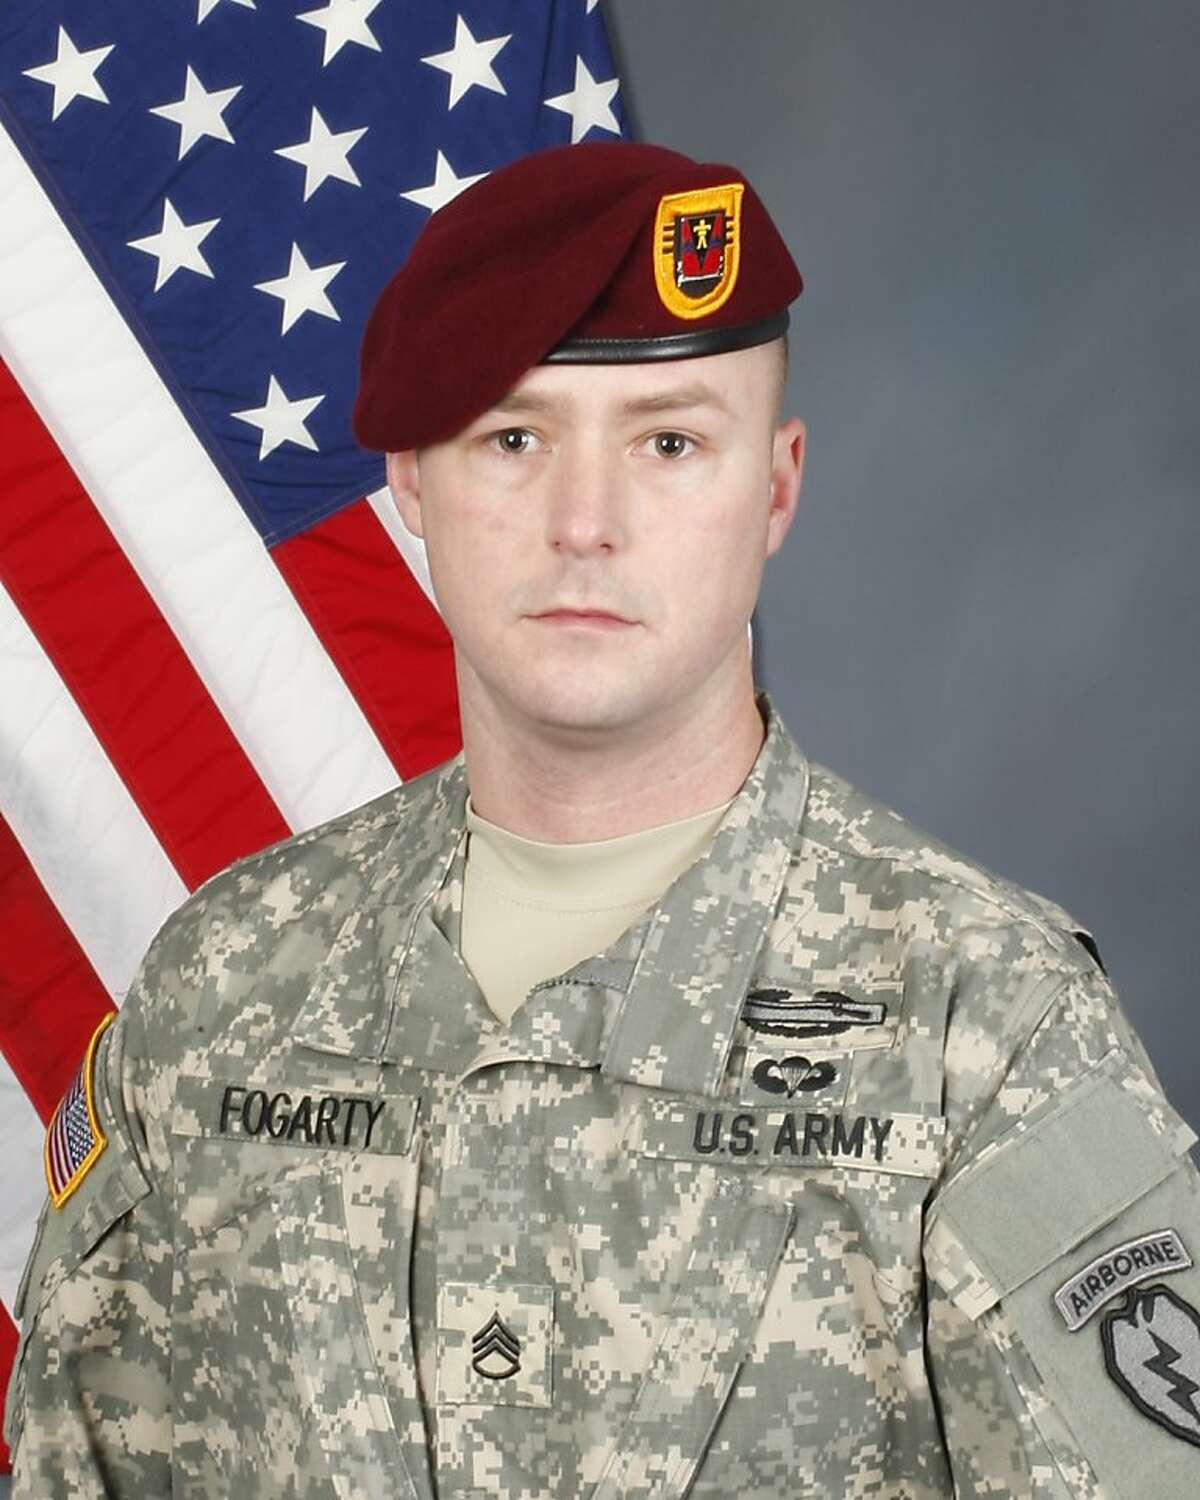 Army Staff Sgt. Thomas K. Fogarty of Alameda, killed in fighting in Afghanistan on May 6, 2012.